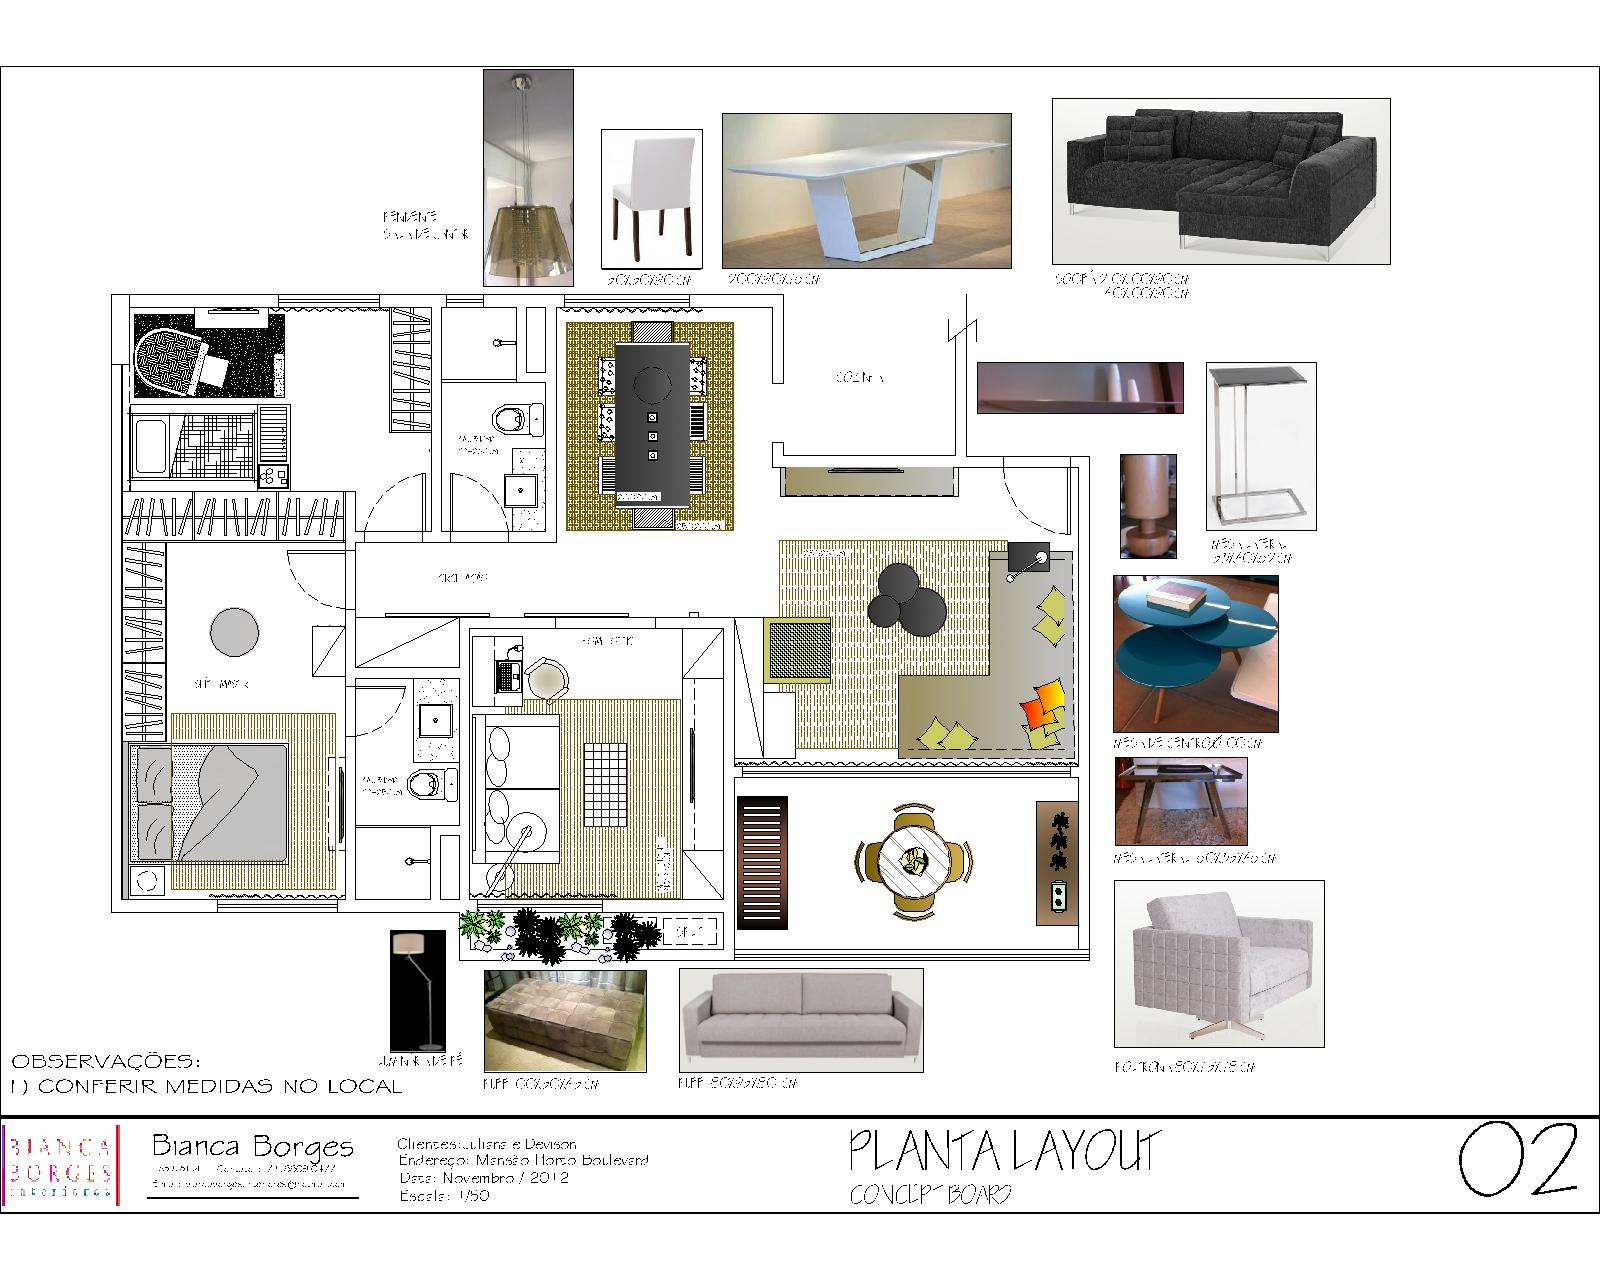 Concept board for Concept sheet for interior design